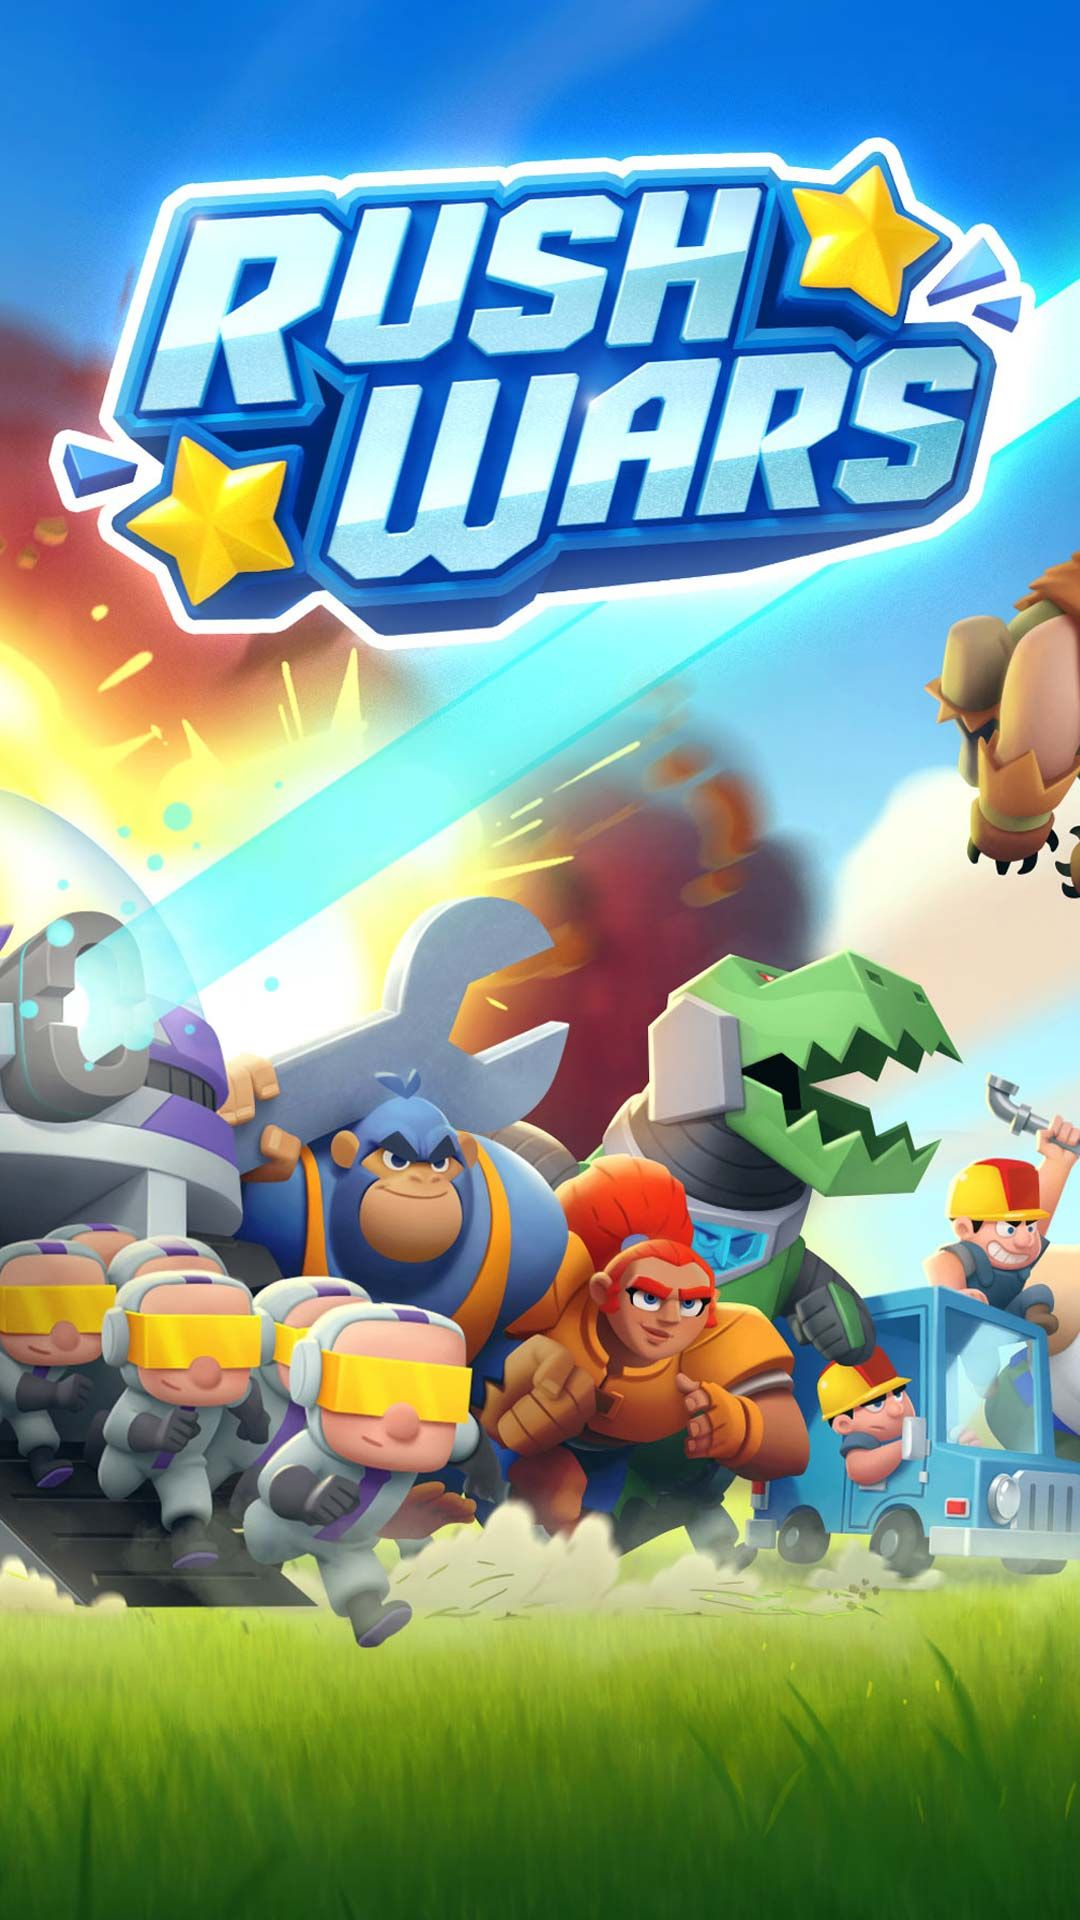 Rush Wars apk for android phone tablet download new